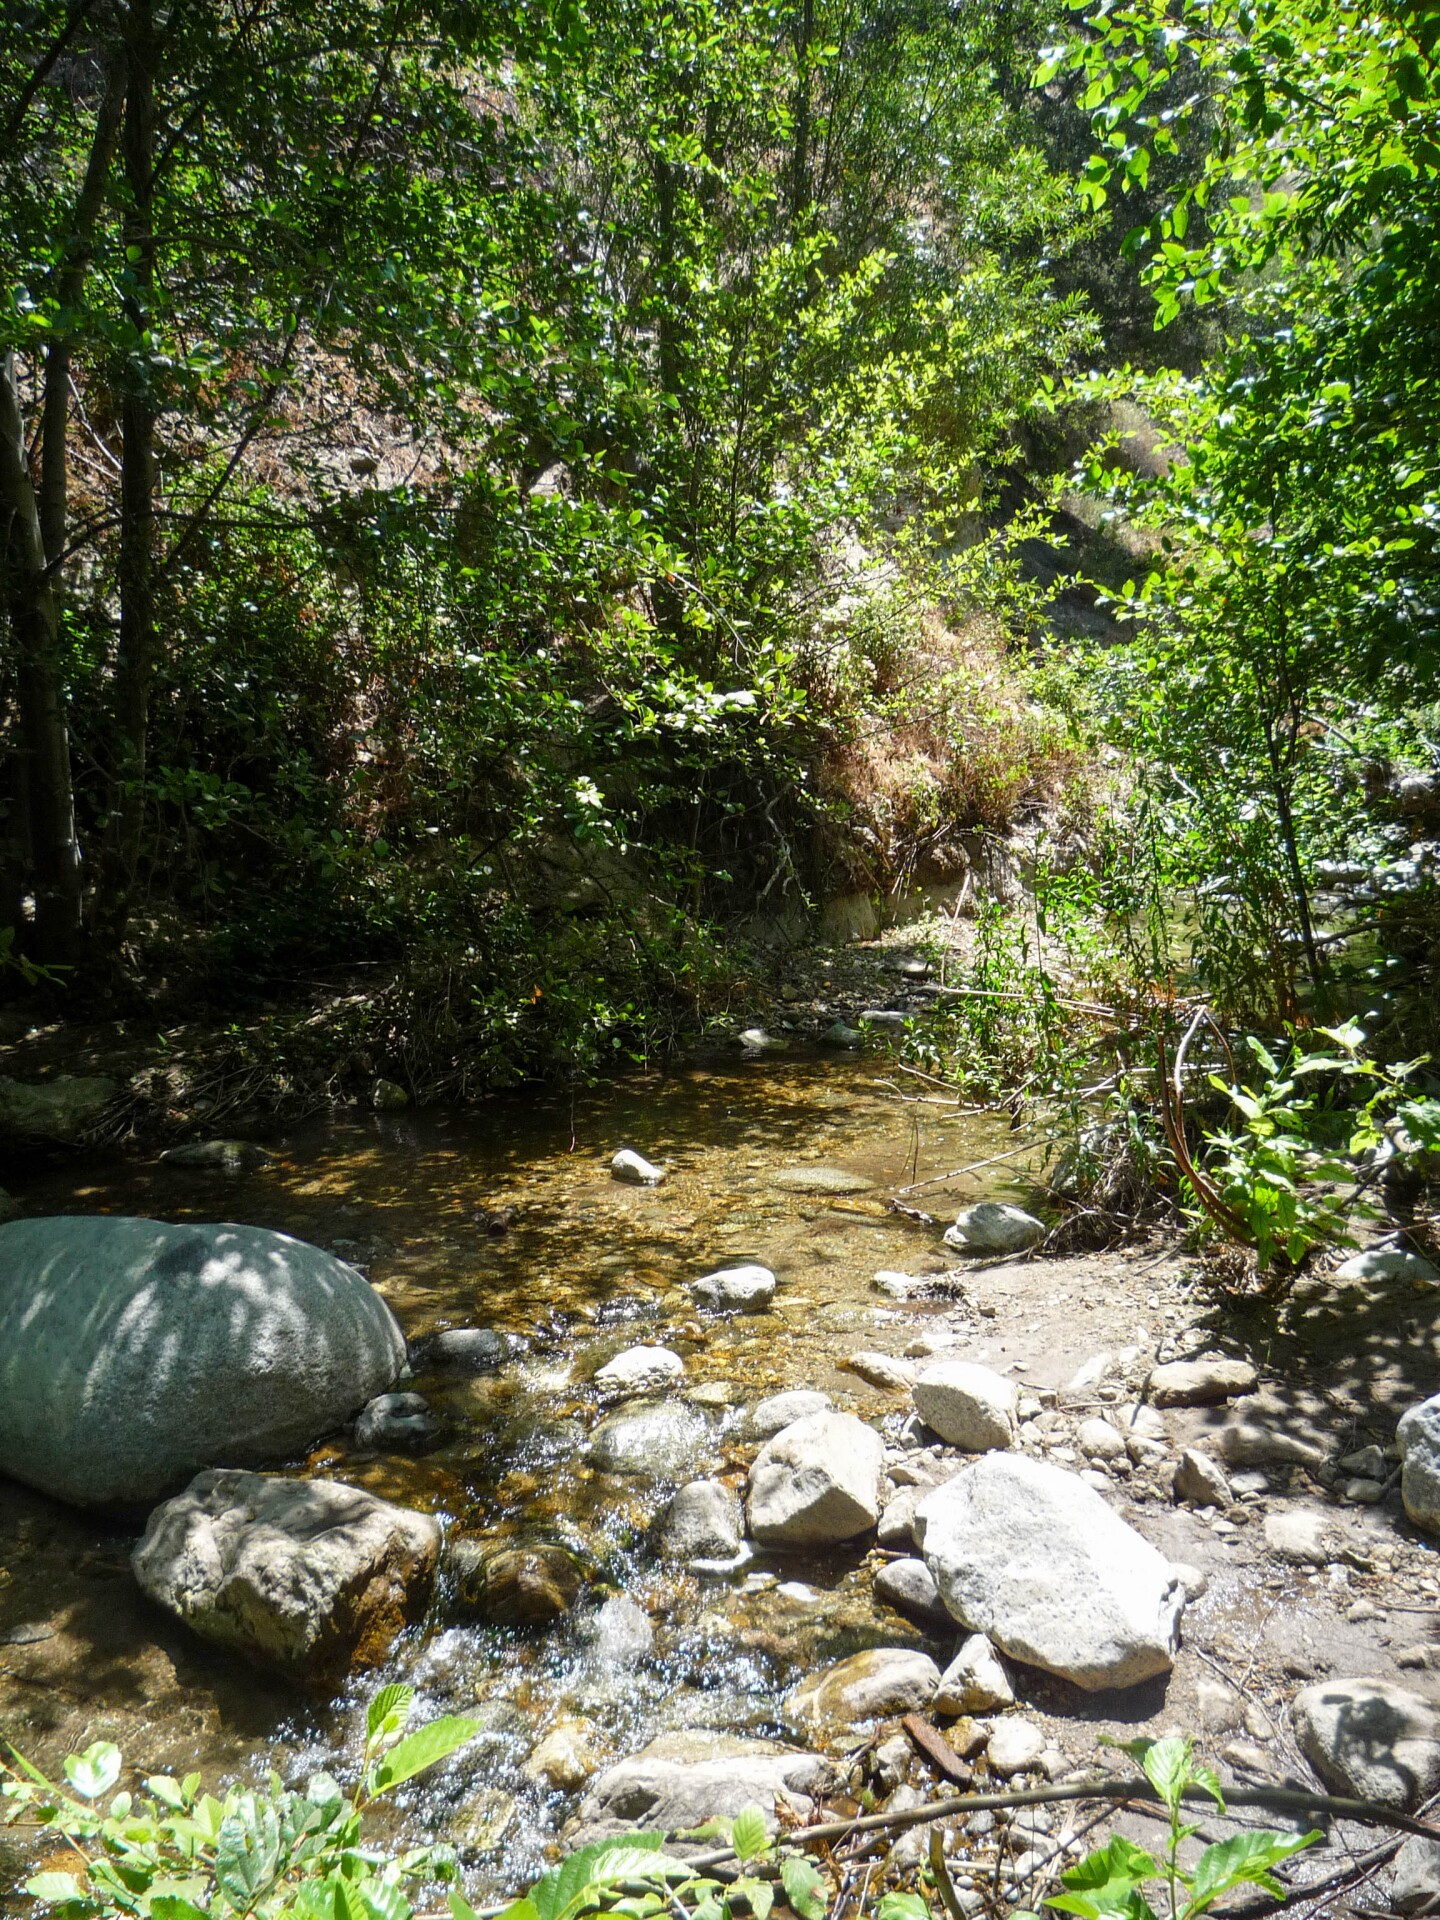 Boulders are dotted across the Eaton Canyon Stream where hikers must traverse through to reach the falls.